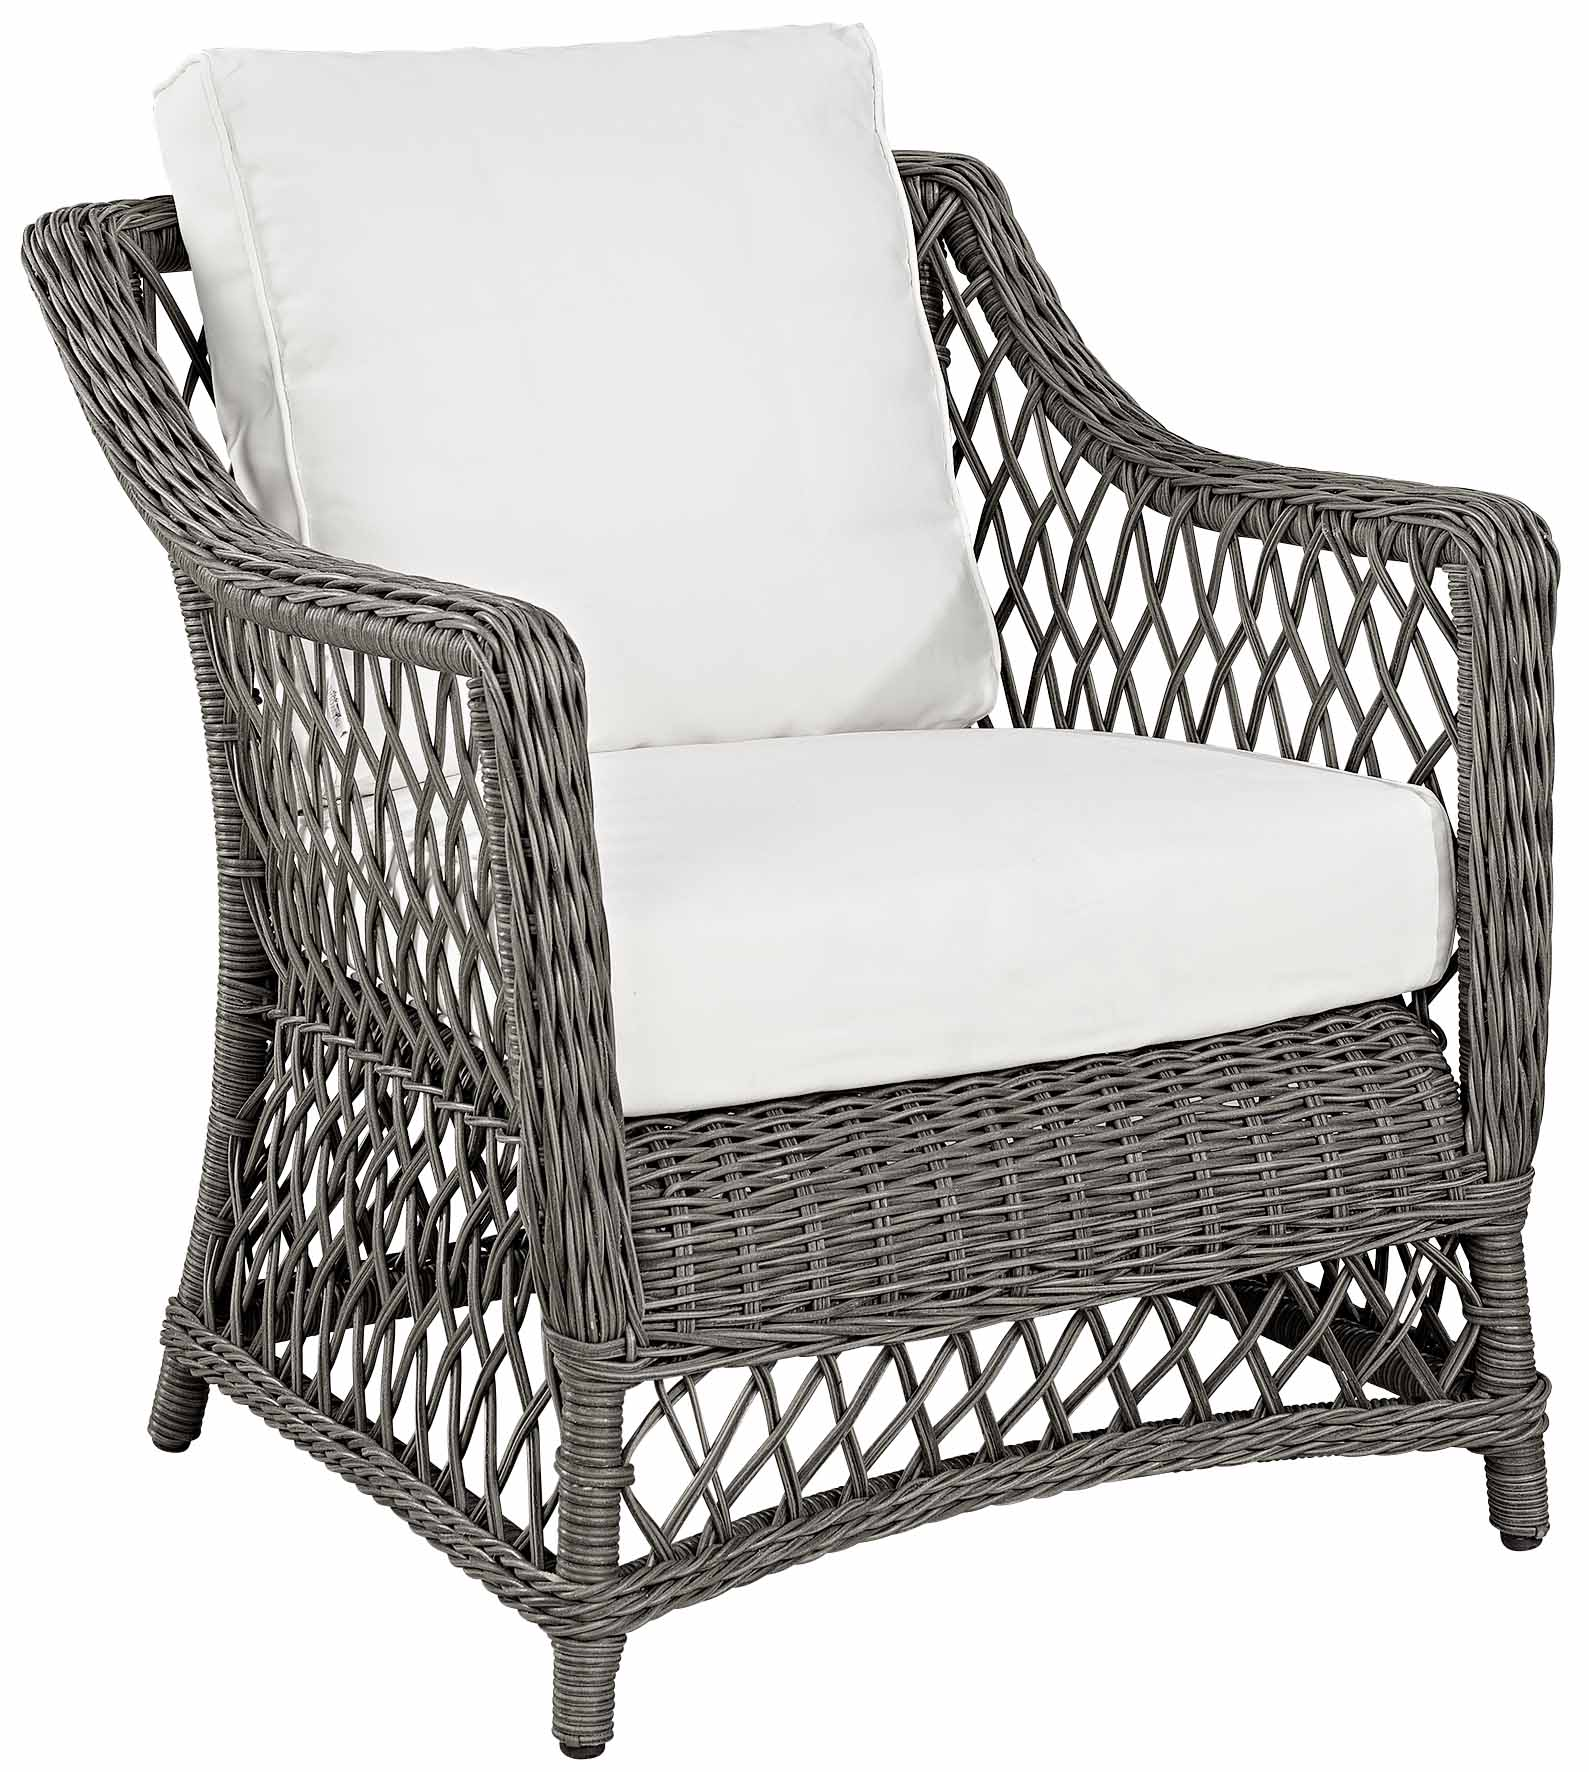 outdoor wicker chairs nz folding at home depot artwood wood furniture rattan